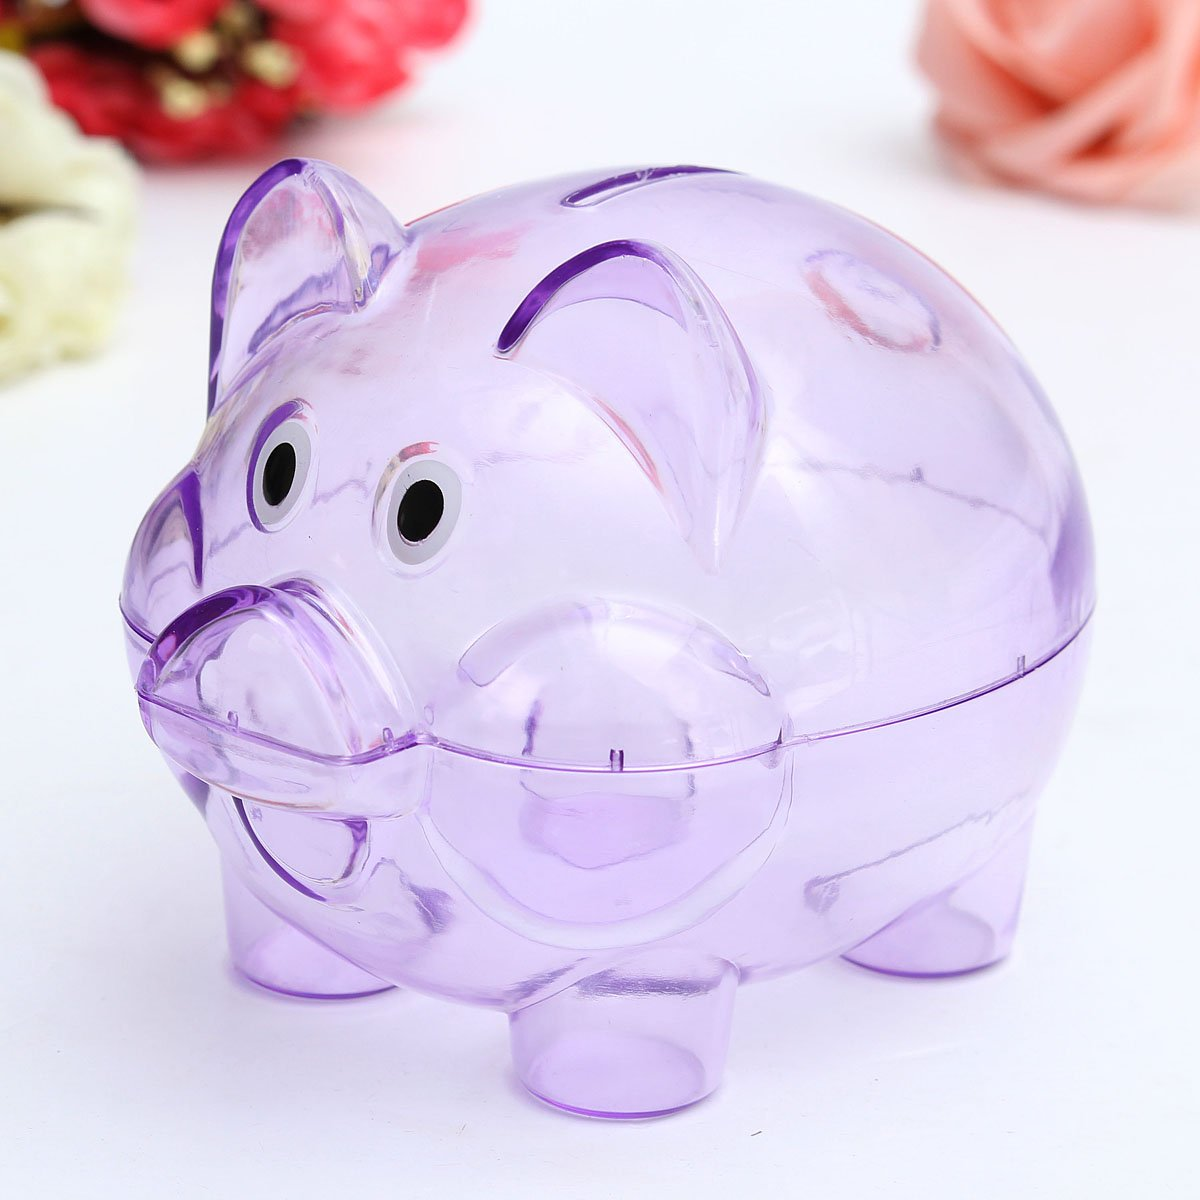 Children Kids Baby Portable Cute Plastic Pig Clear Piggy Bank Coins Box Storage Box Money Saving Case Toy Gift Buckdirect Worldwide Ltd.